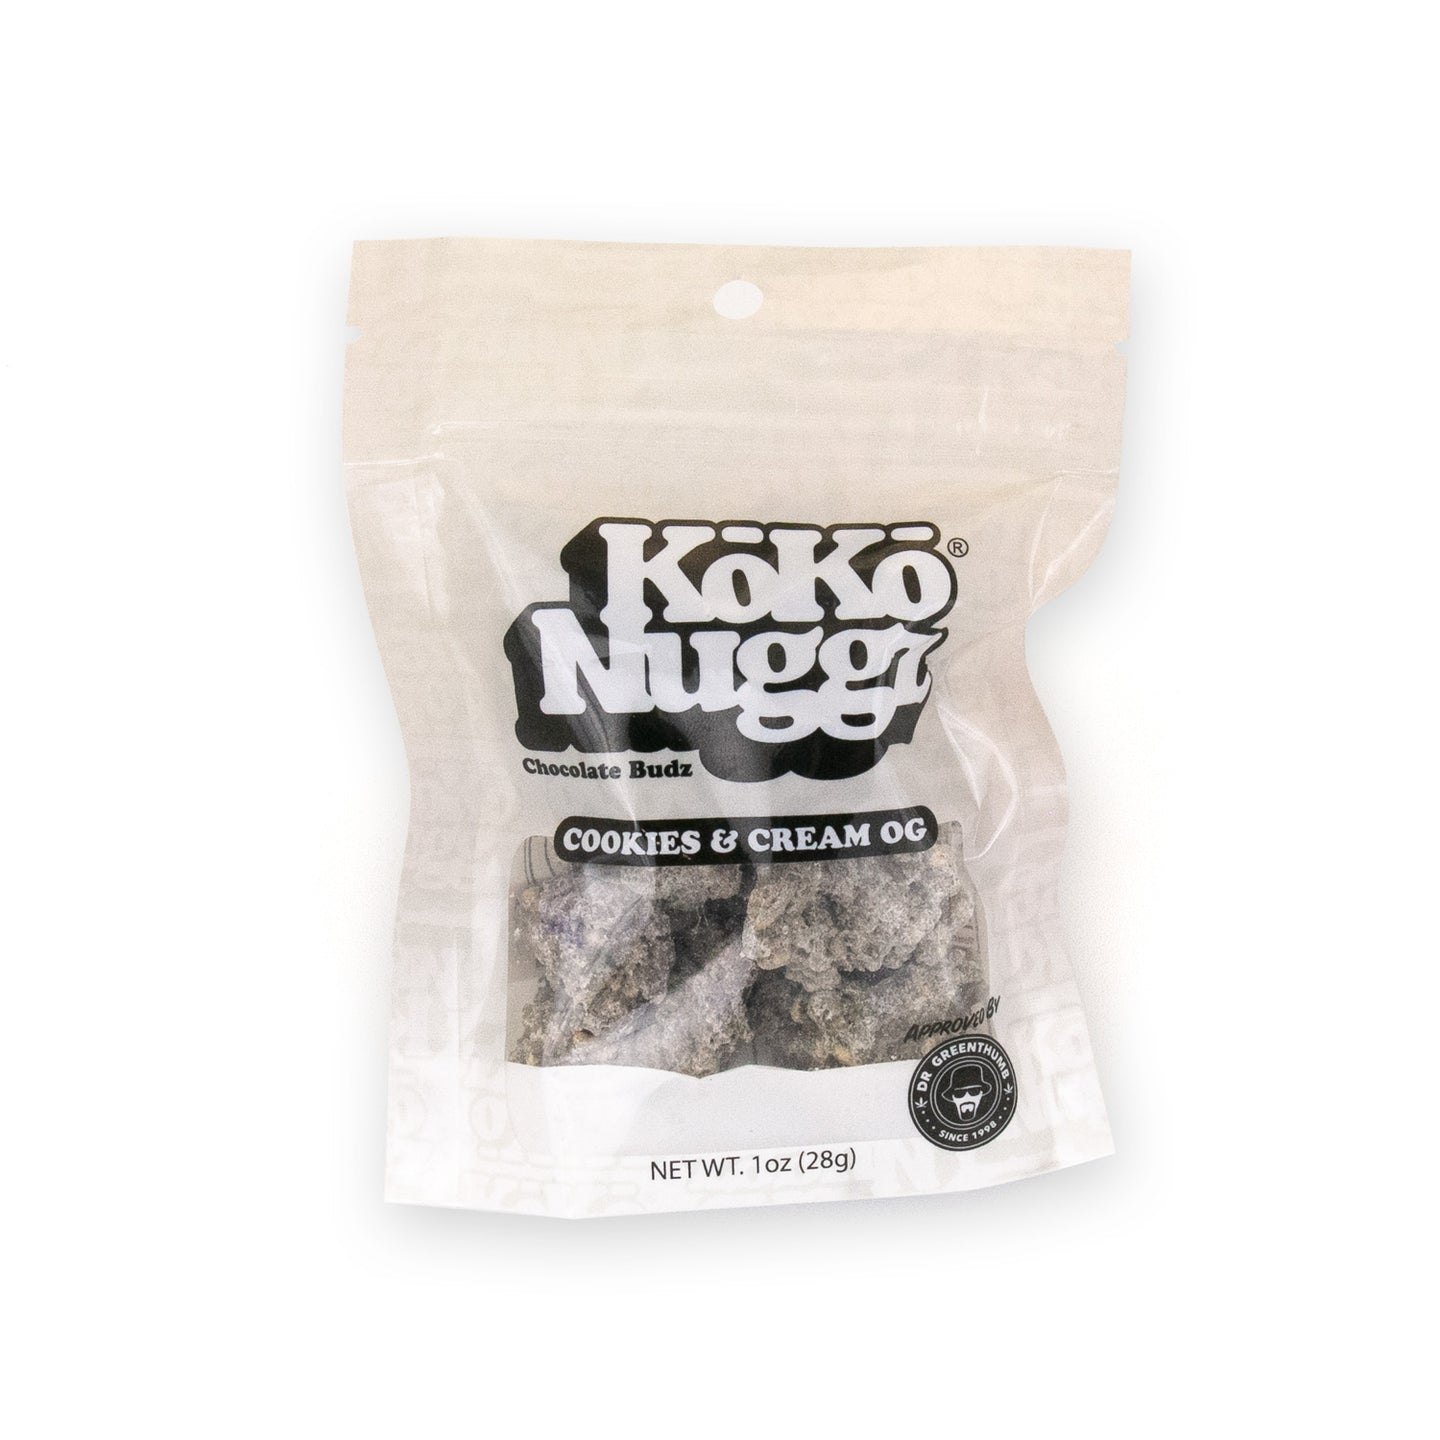 Cookies & Cream OG Chocolate Buds (1oz) by KokoNuggz - Koko Nuggz Europe